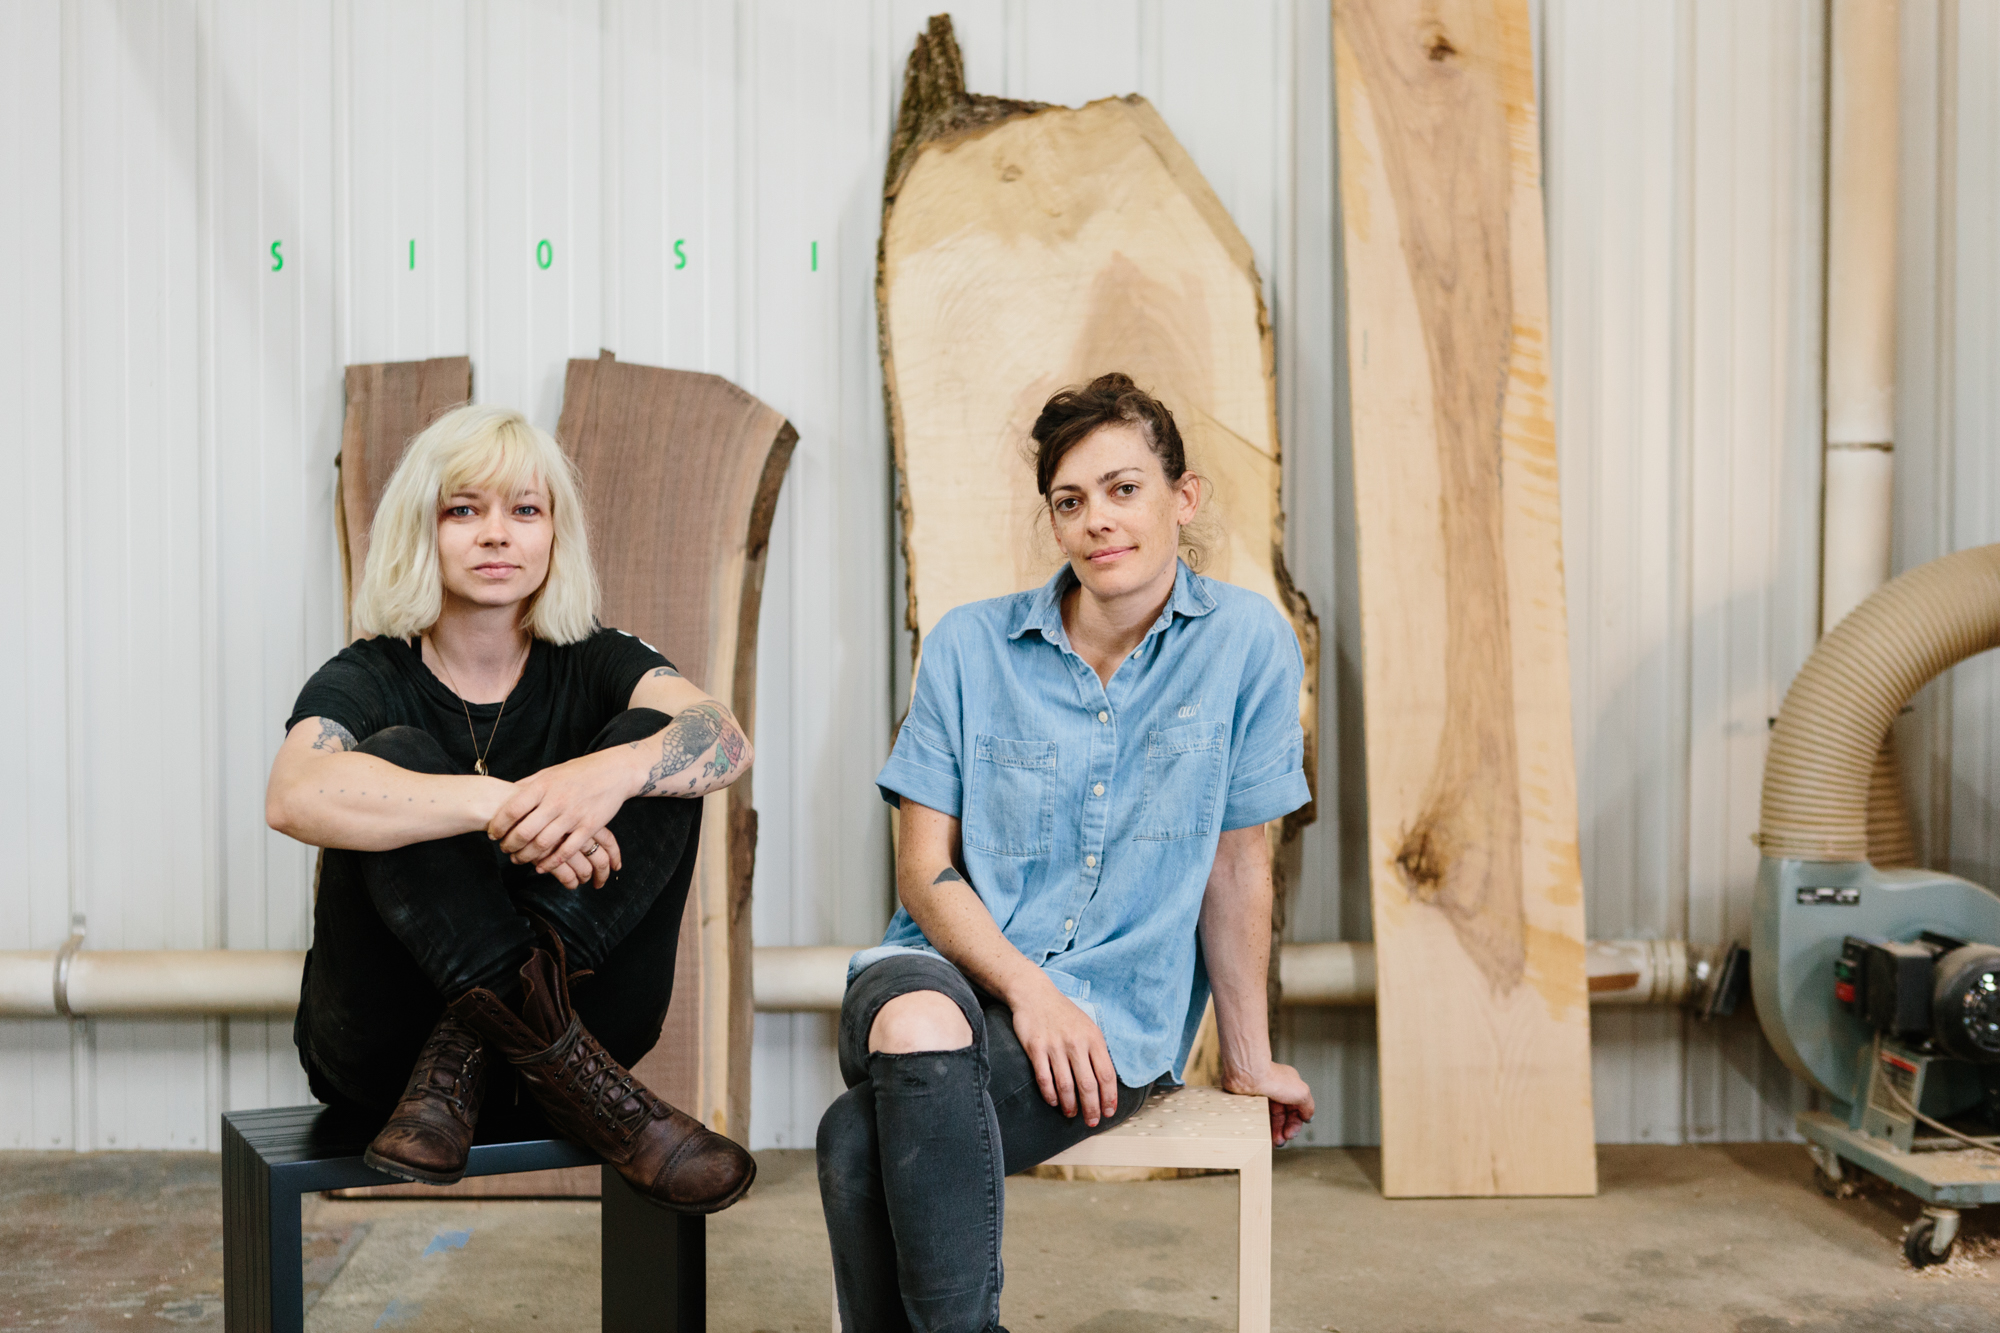 A commercial portrait of Ivy Siosi and Audi Culver of Siosi Design in their studio in Bloomington, Indiana.